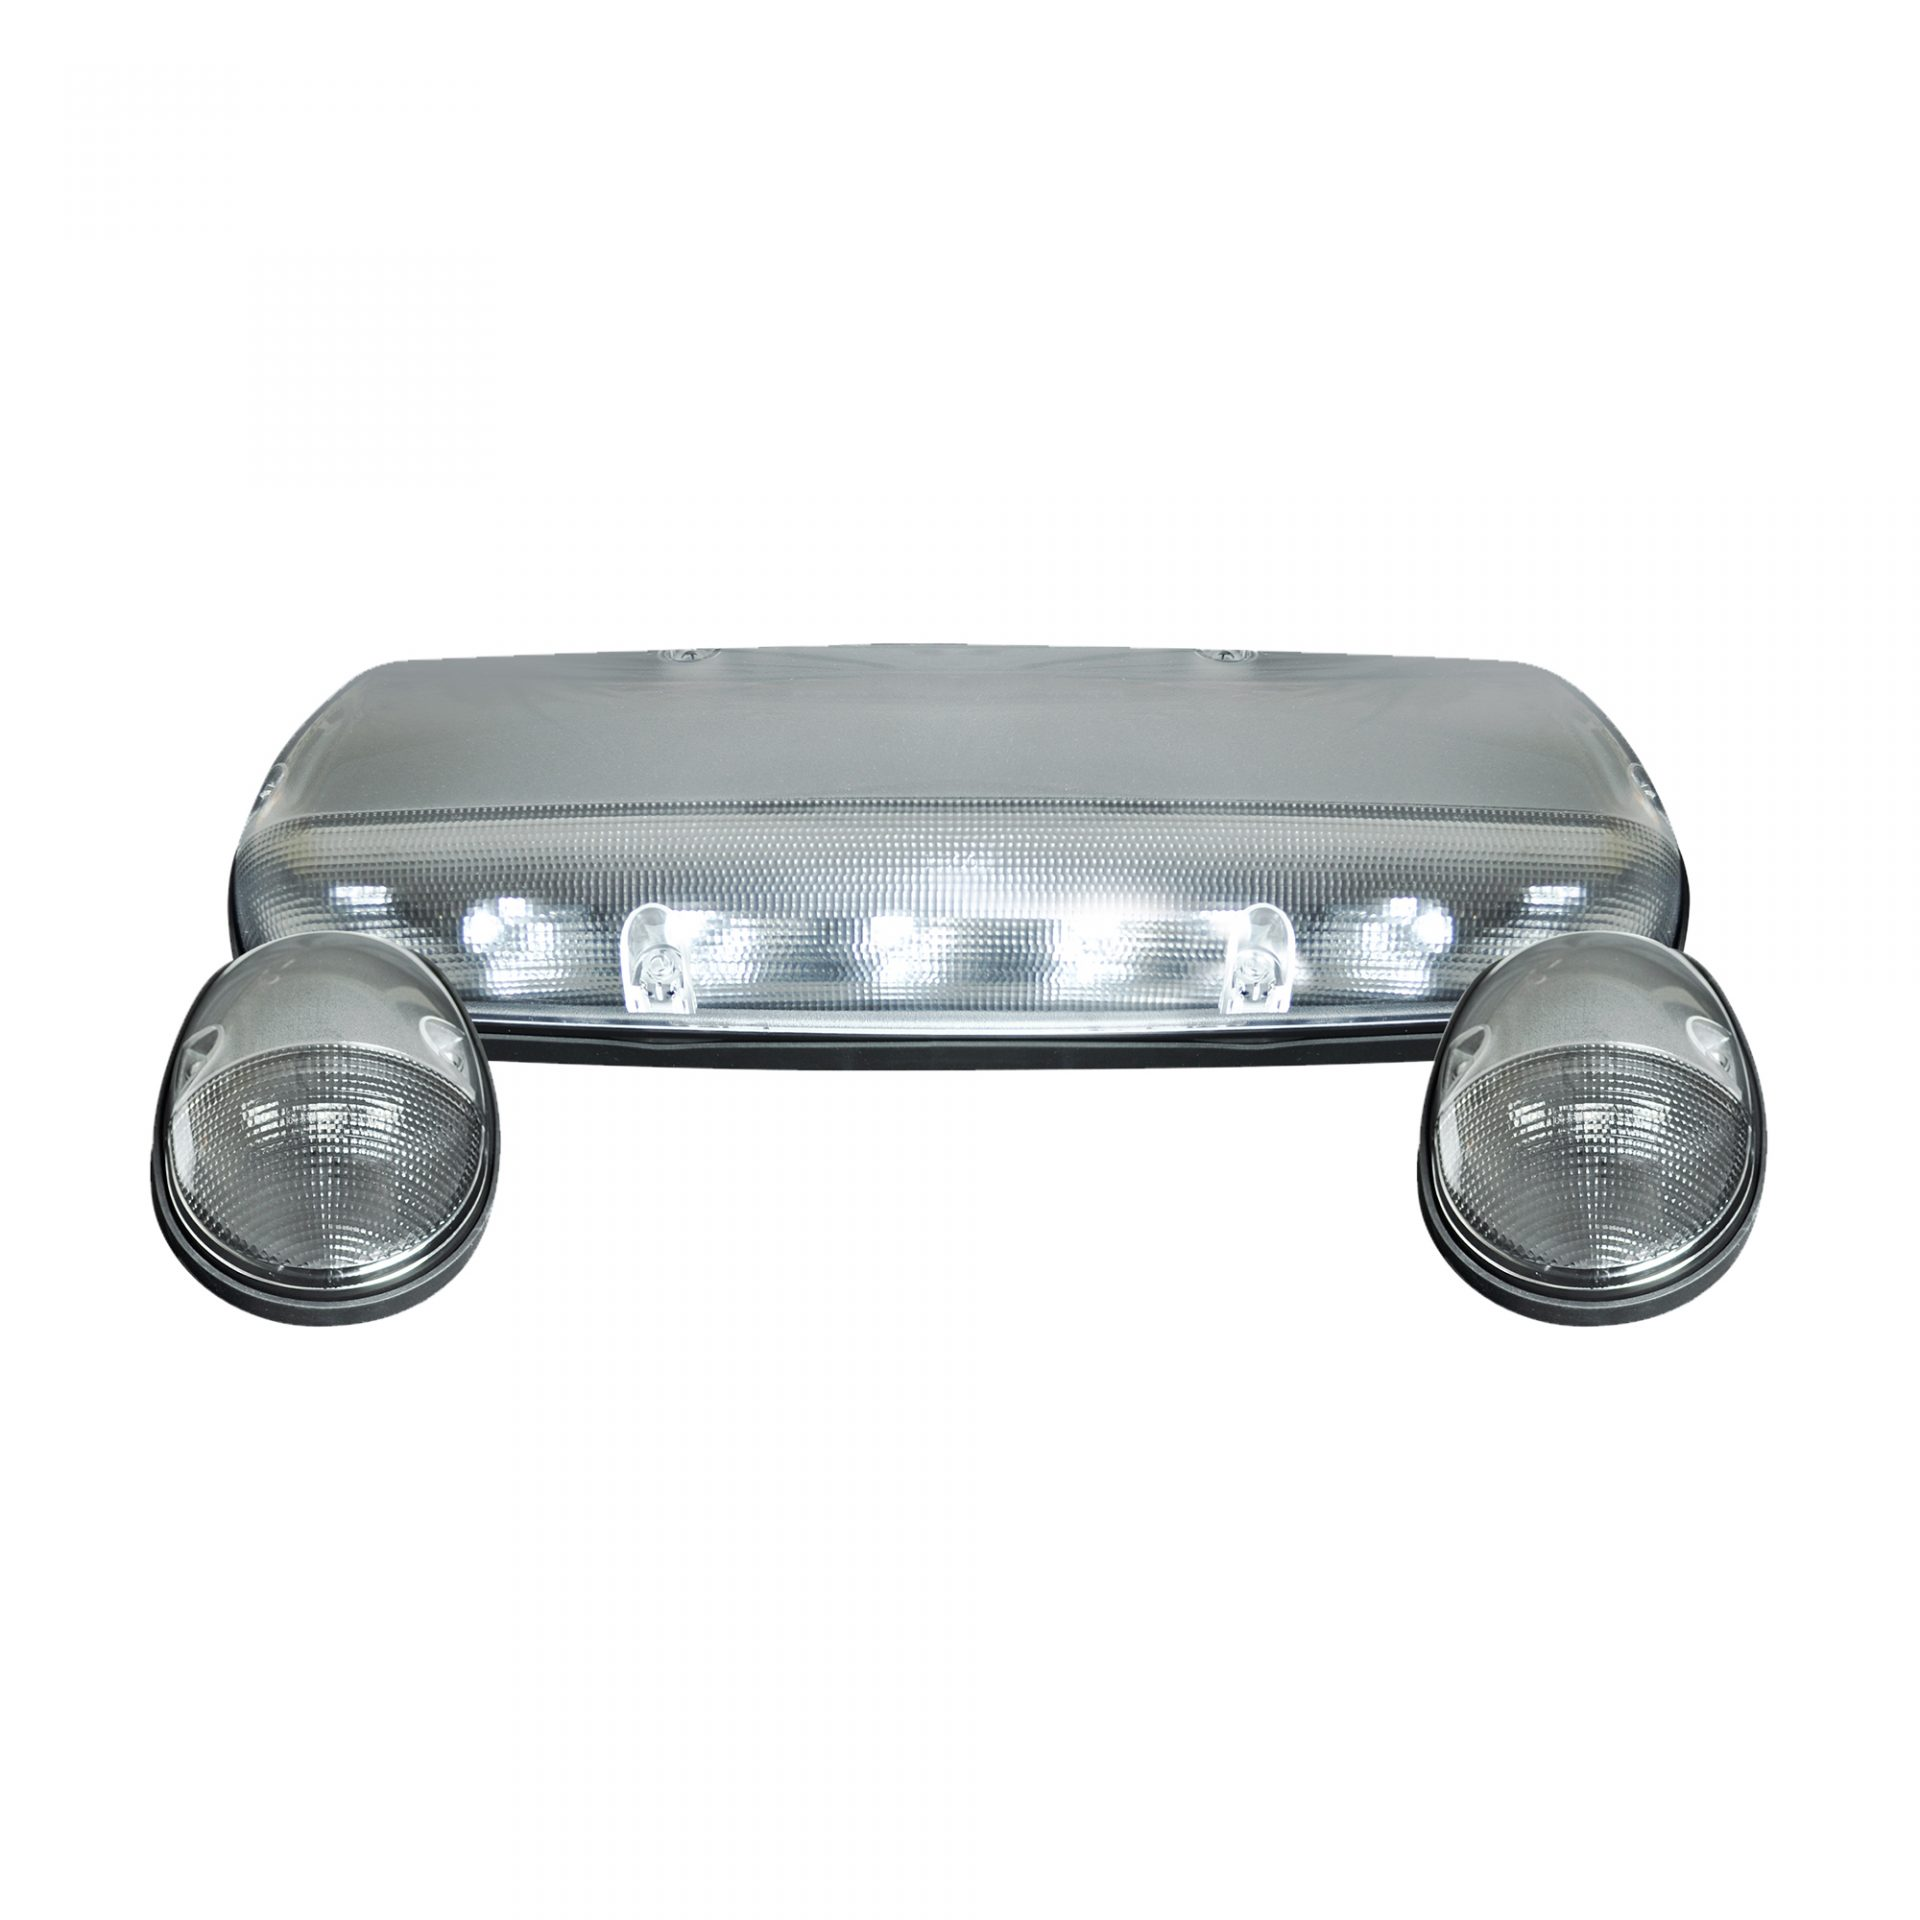 Gmc Chevy Led Cab Roof Light Truck Car Parts 264155whcl Lights For Silverado Recon